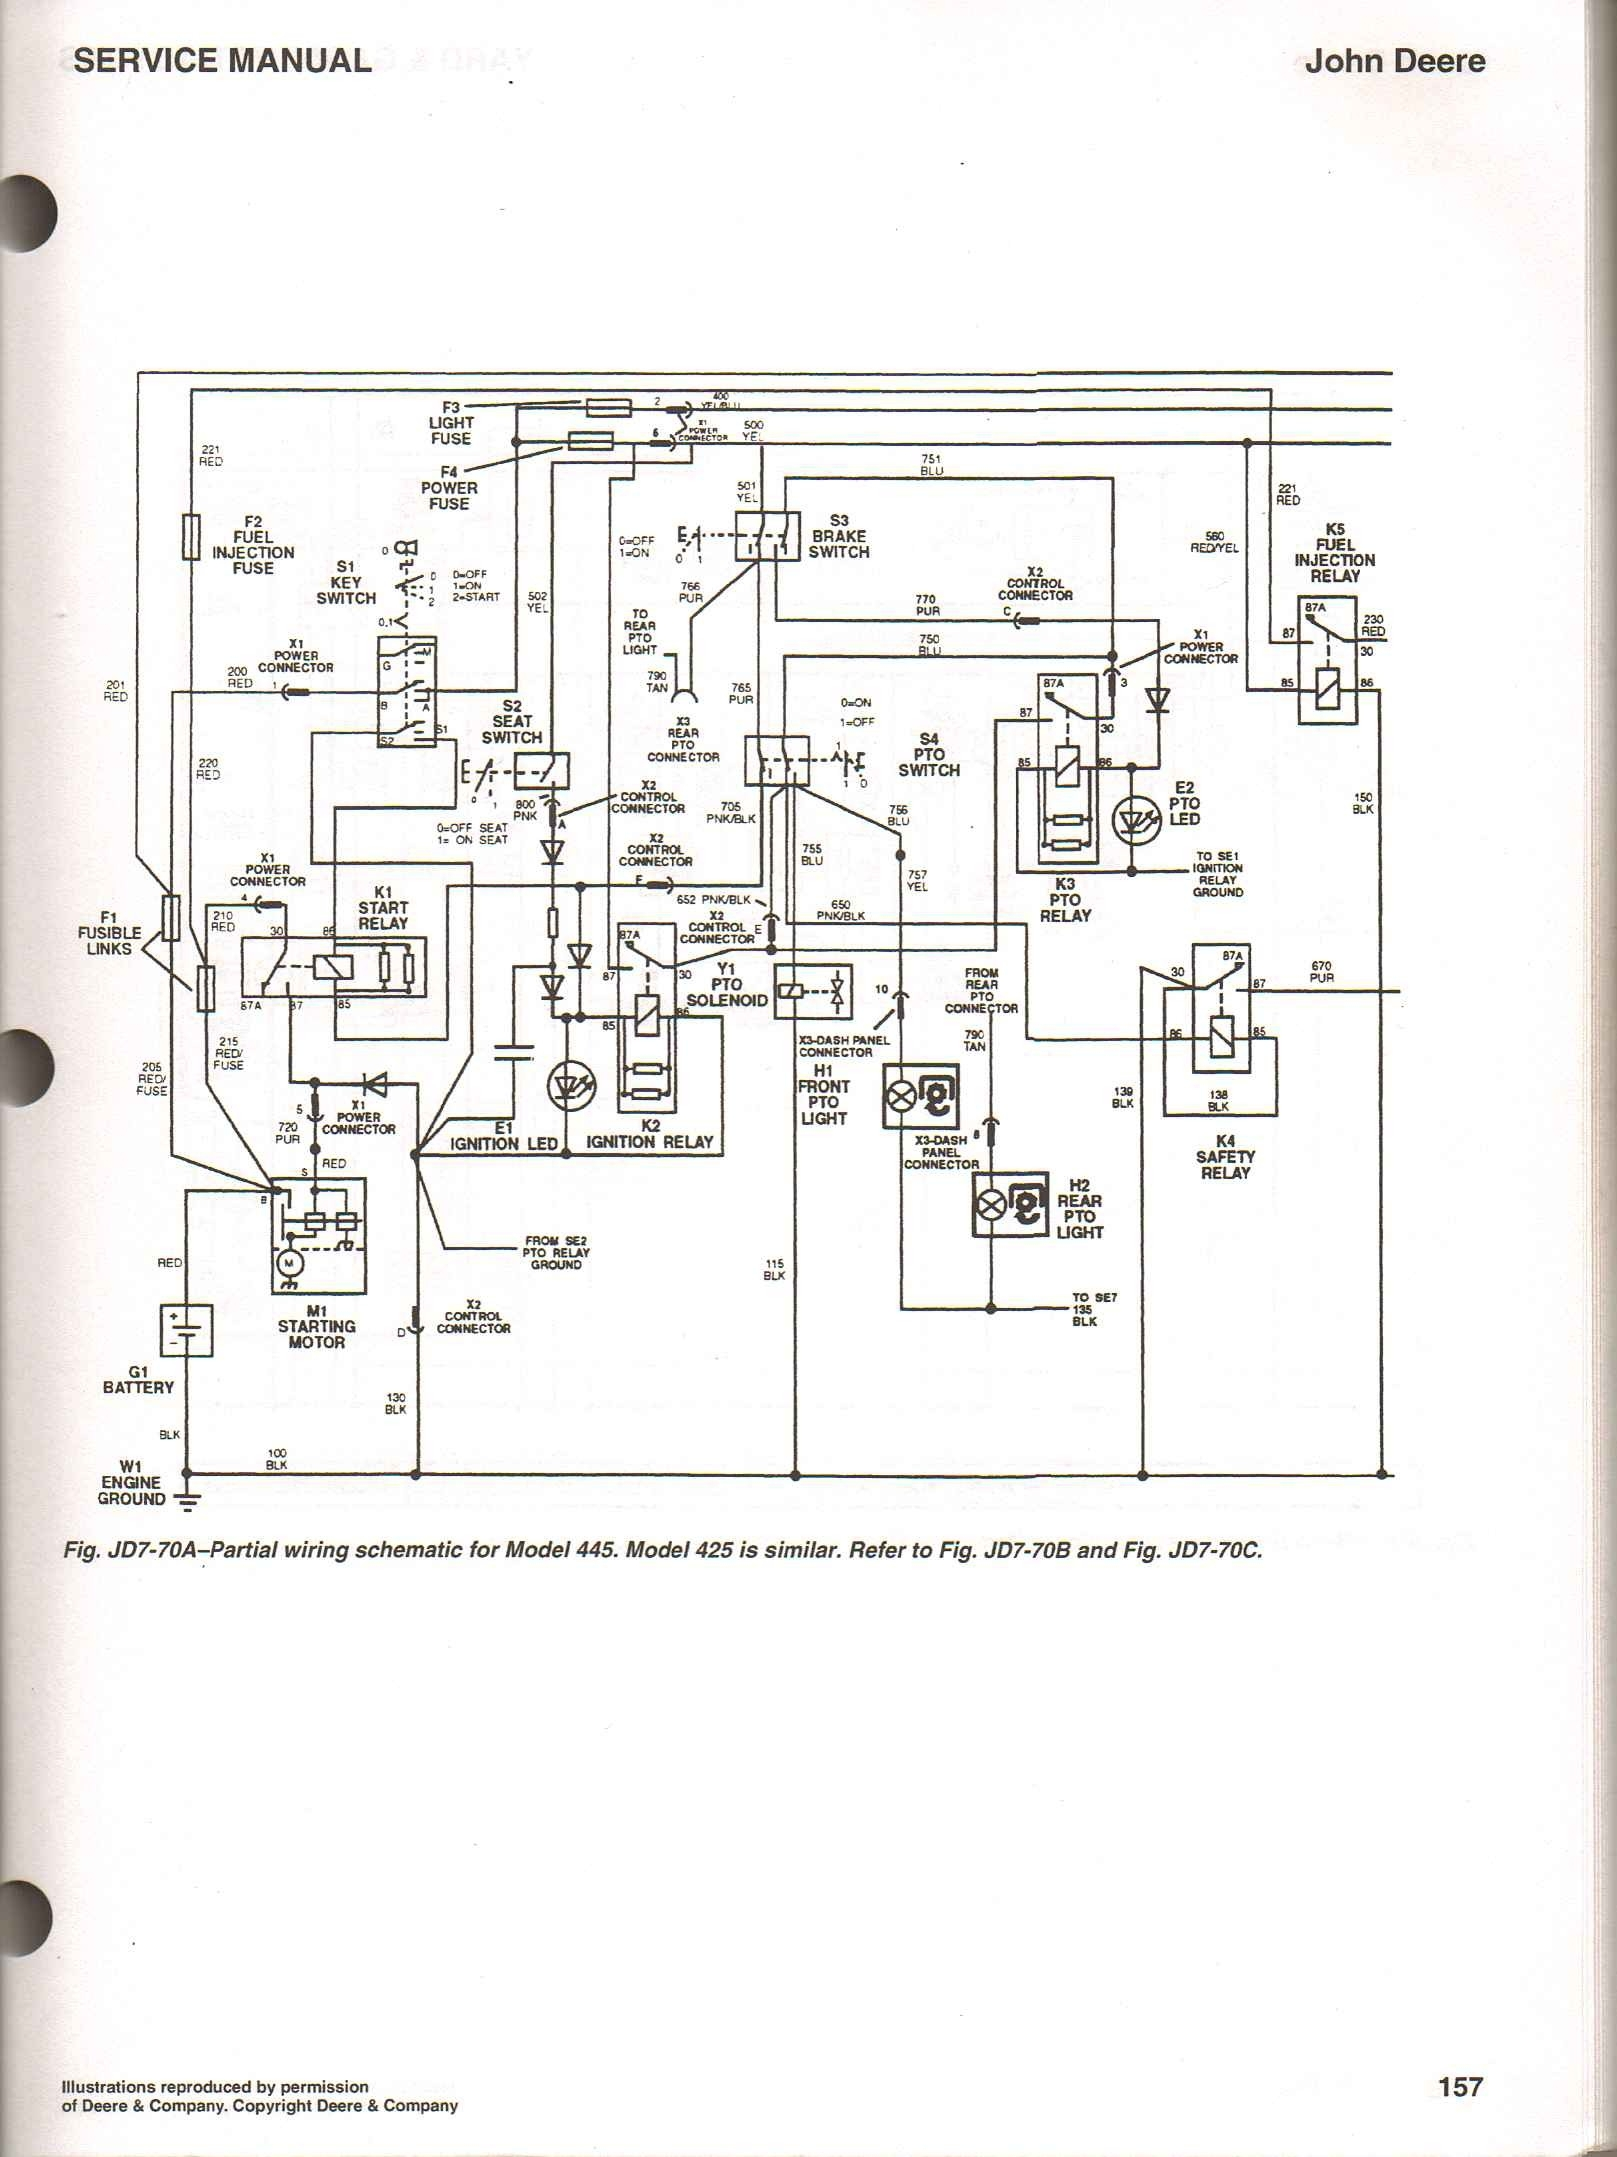 [DIAGRAM] Radio Wiring Diagram John Deere FULL Version HD